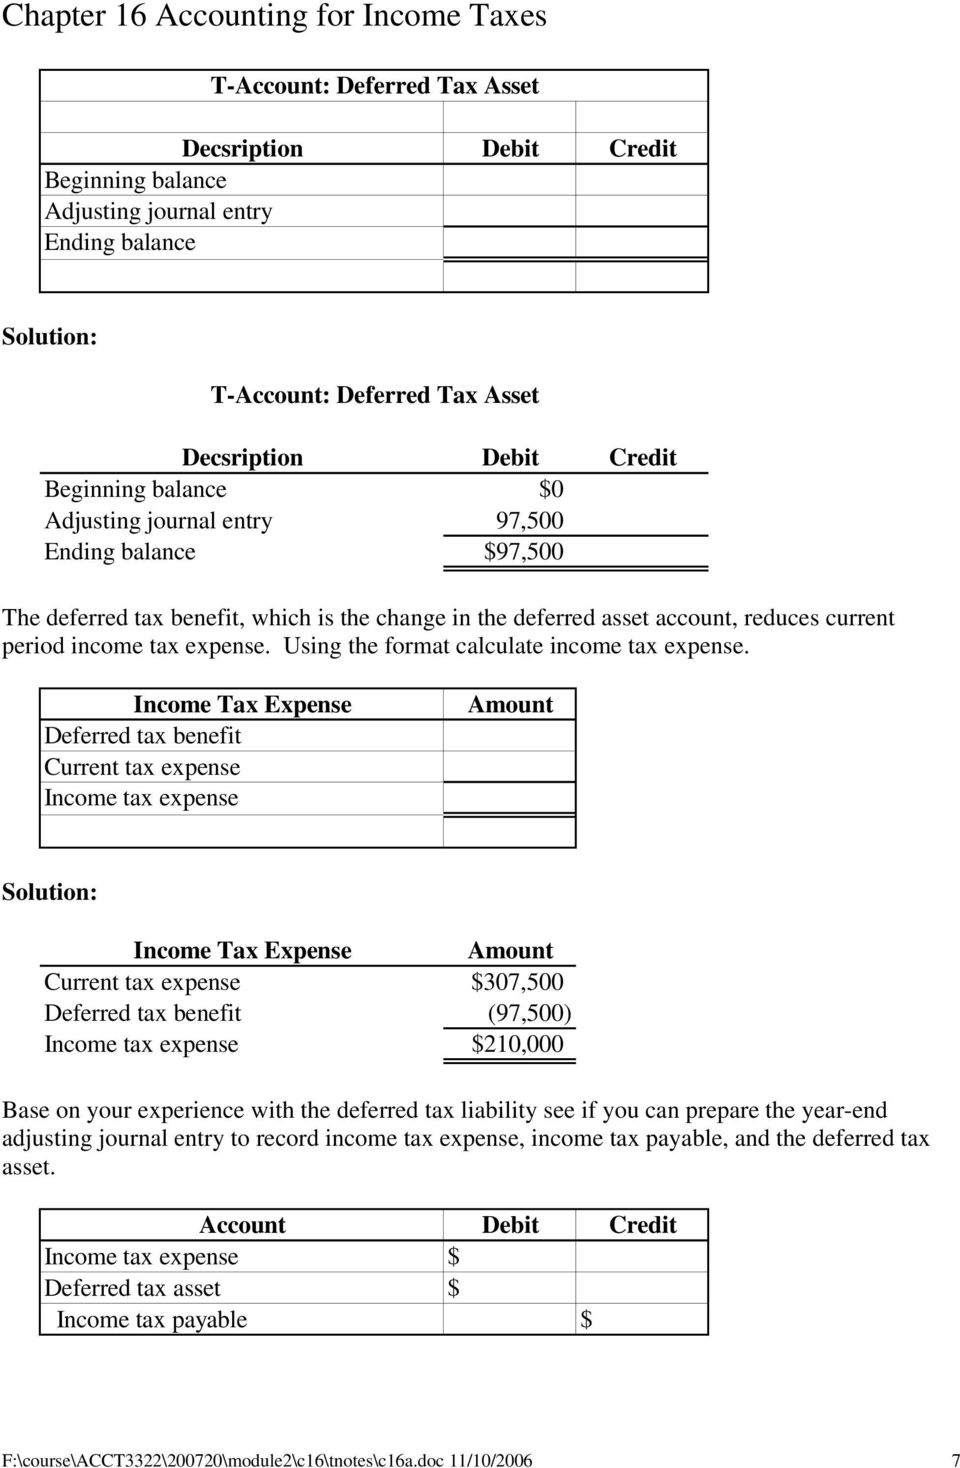 chapter 16 accounting for income taxes pdf